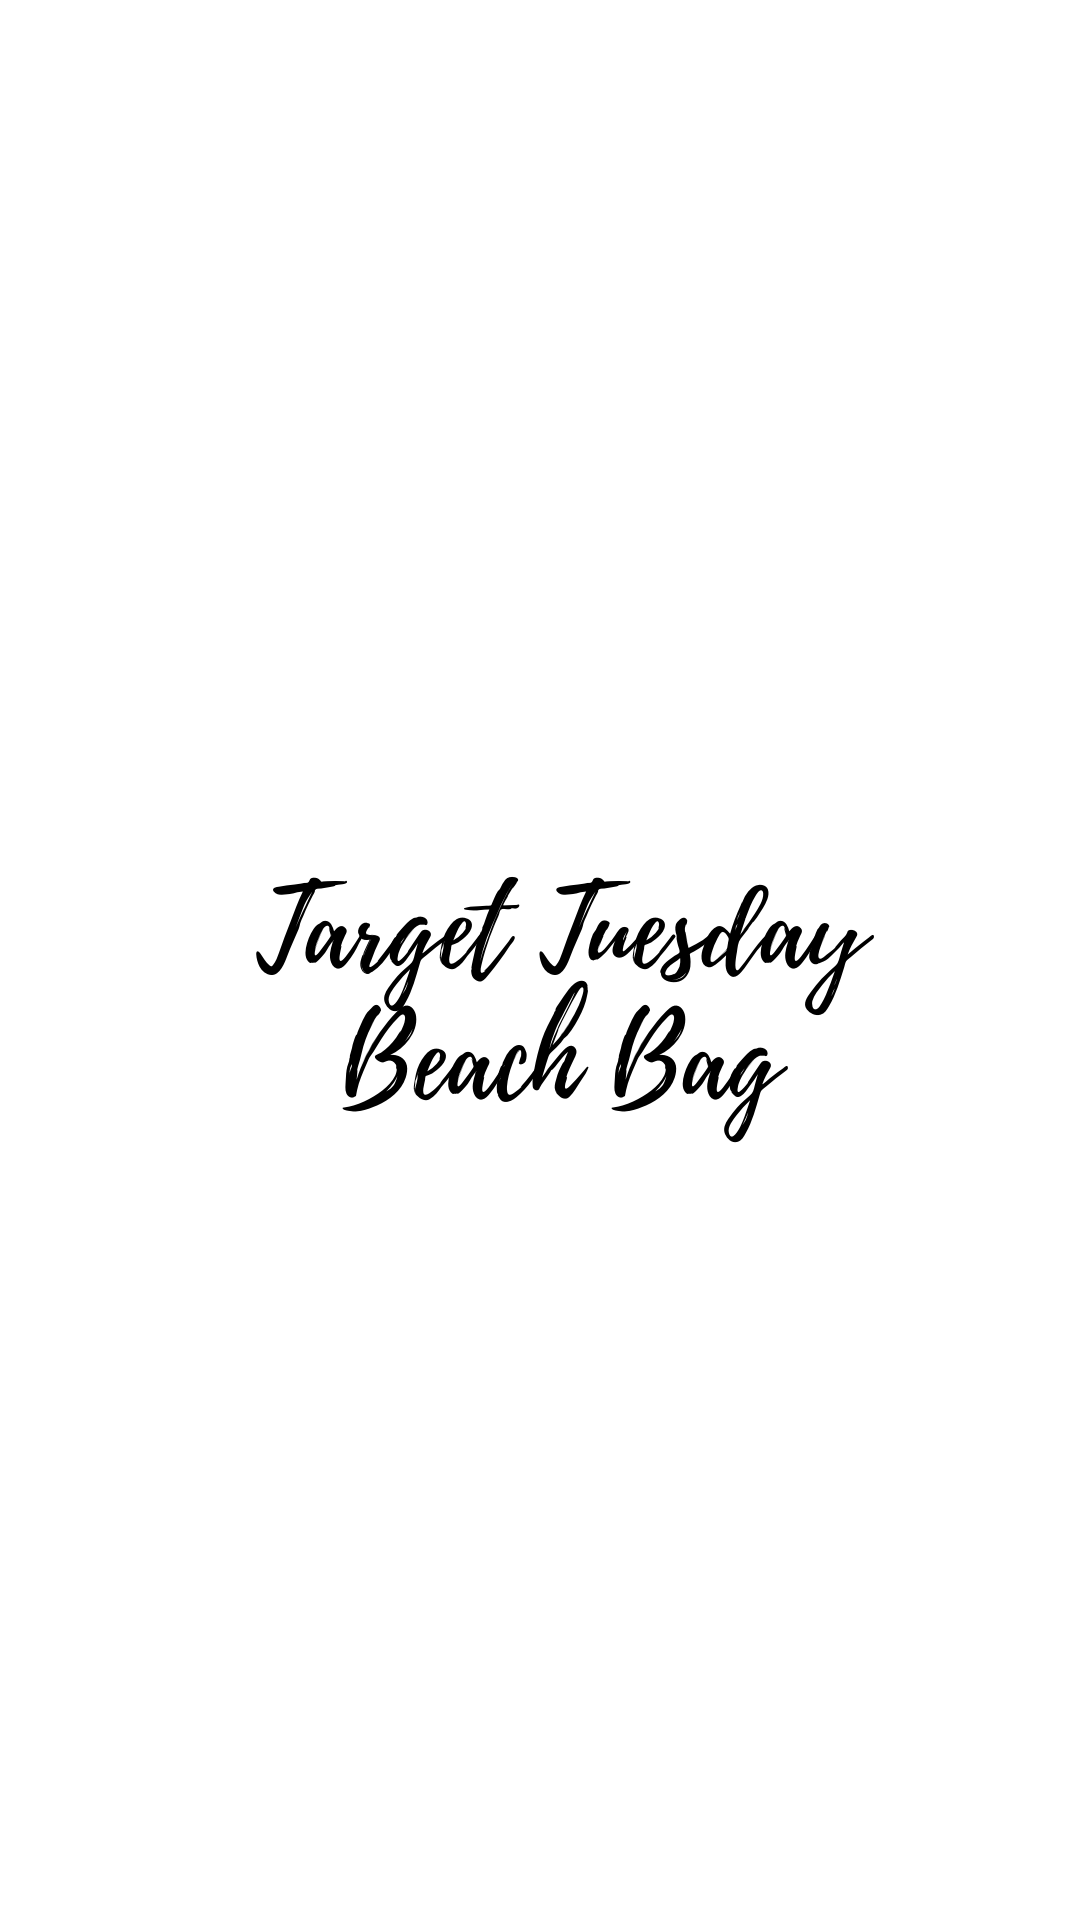 sarah bowmar target tuesday beach bag